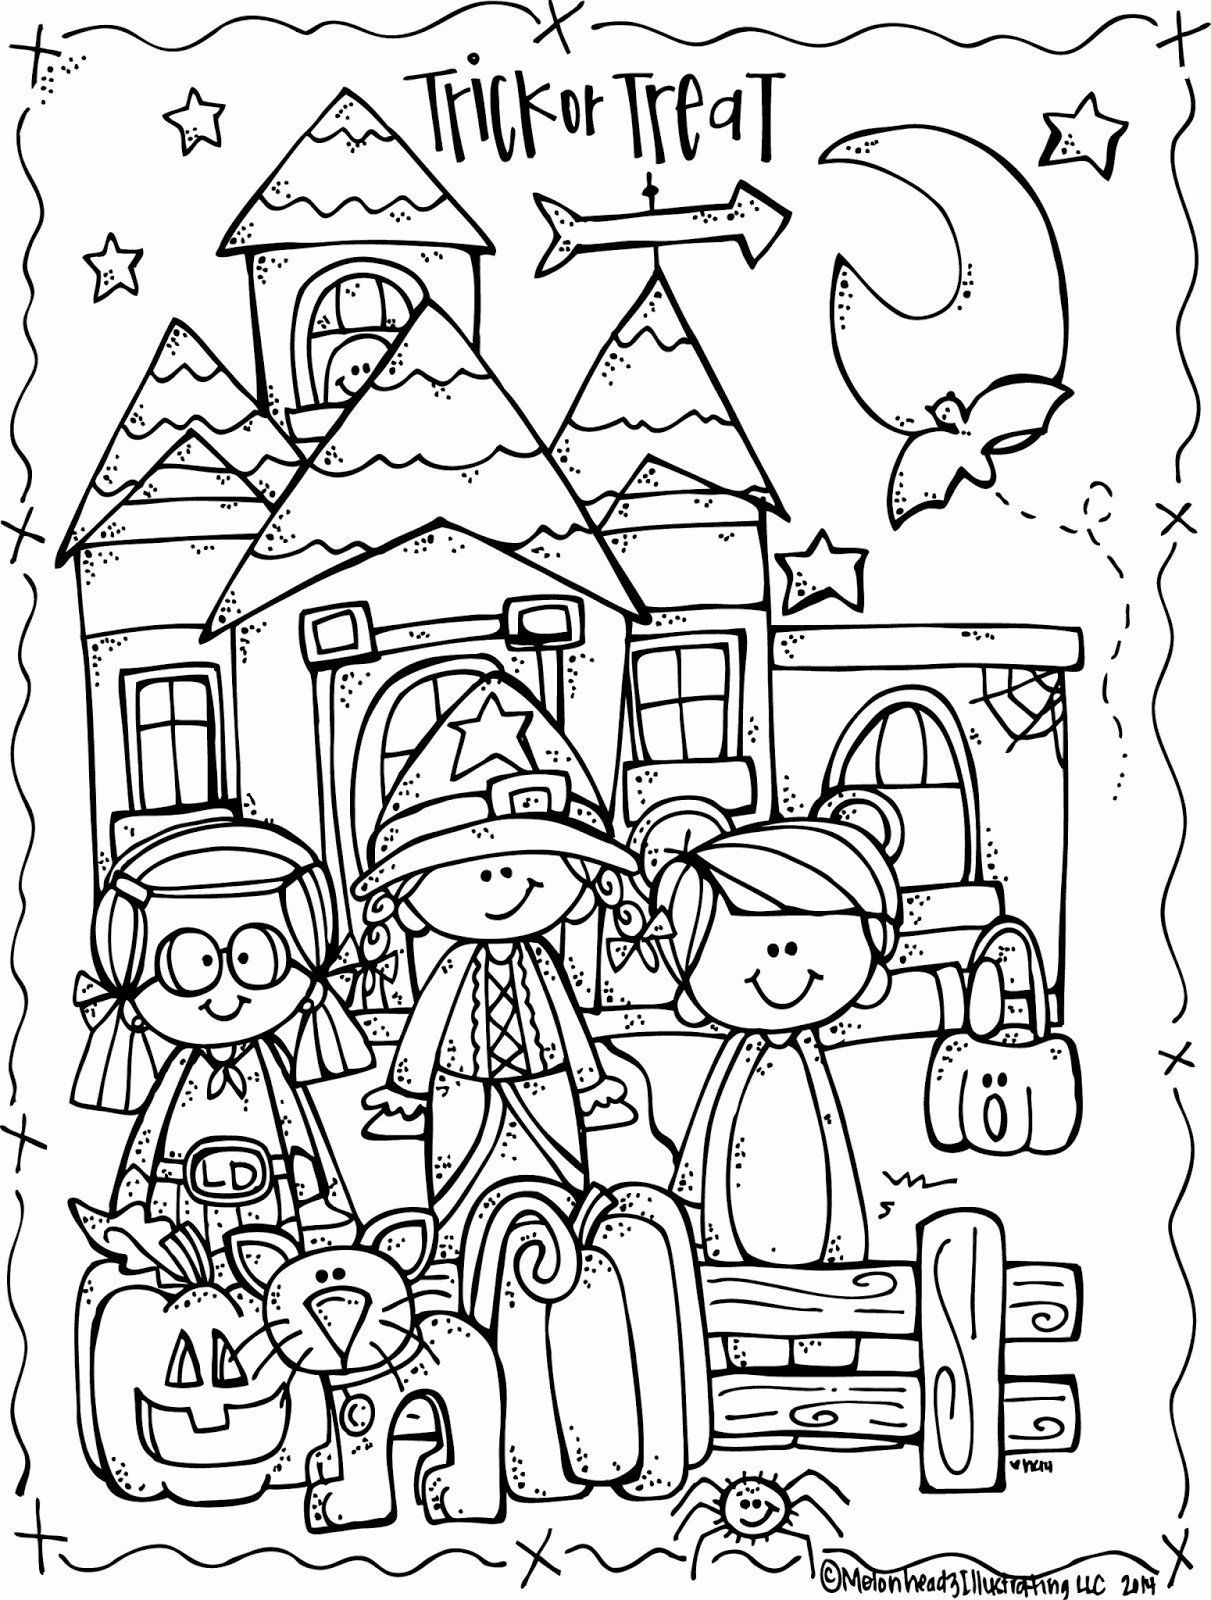 Halloween Coloring Books Fresh Melonheadz October 2014 Free Halloween Coloring Pages Halloween Coloring Sheets Fall Coloring Pages